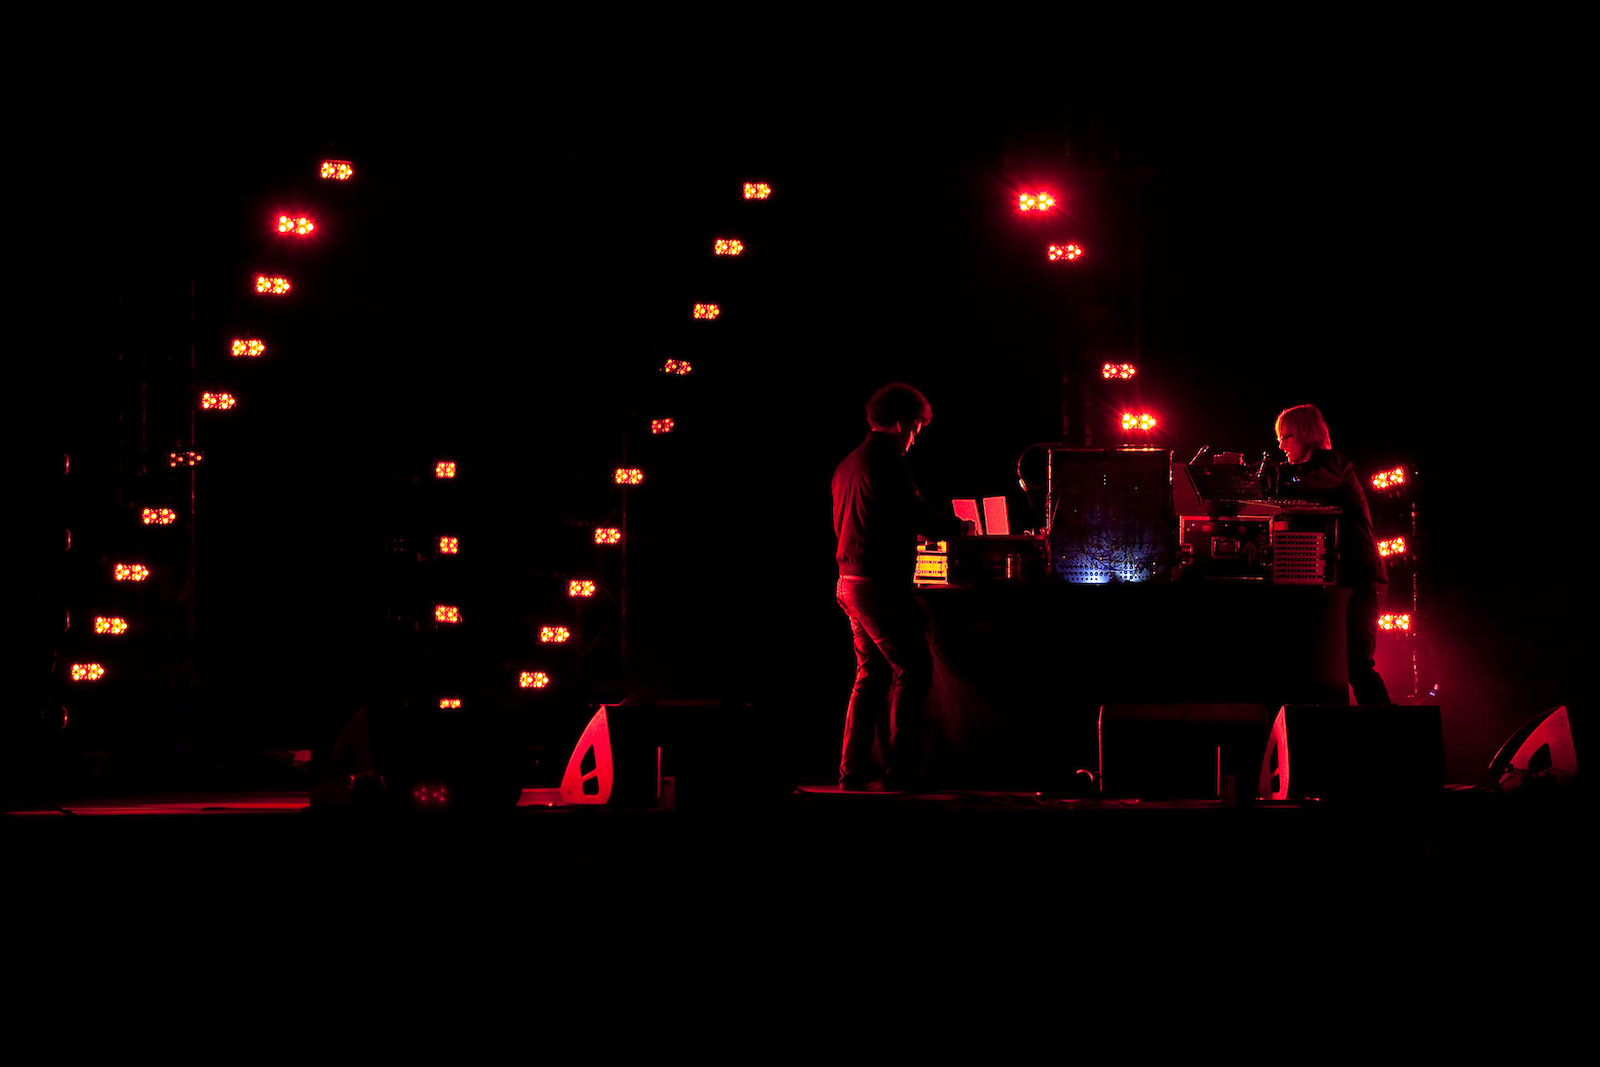 Simian Mobile Disco at Bestival